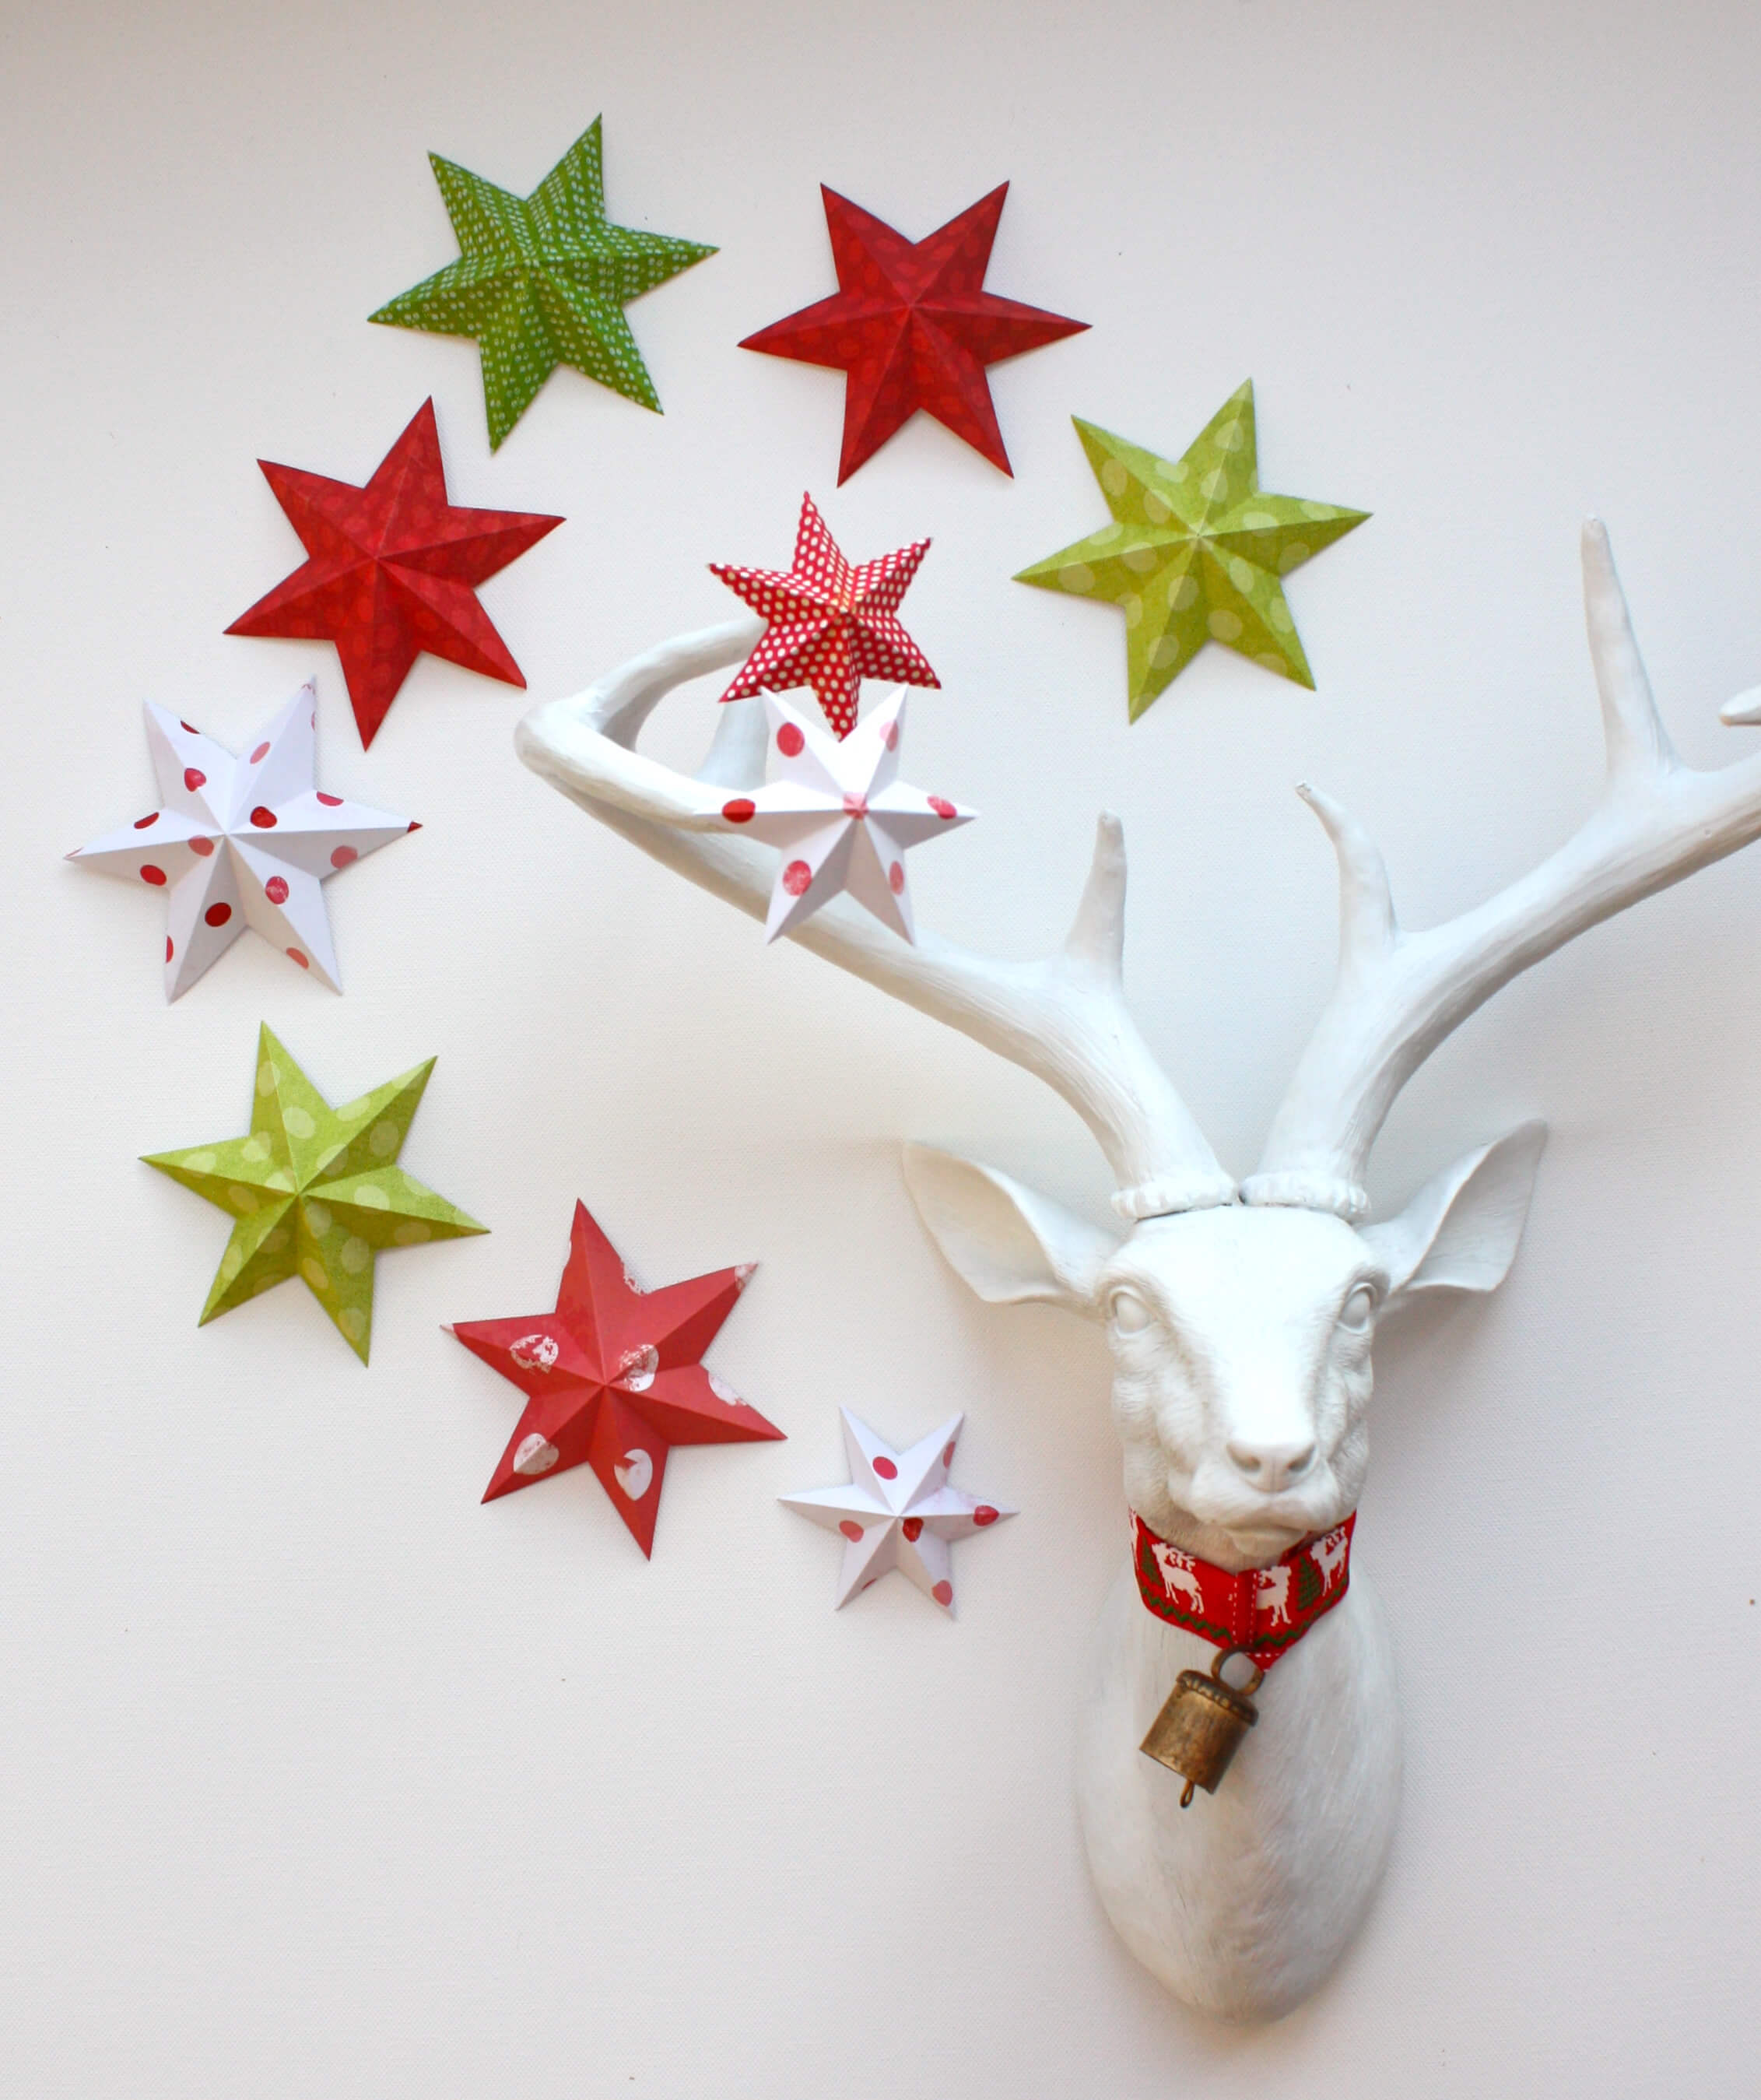 Attractive Paper Craft Ideas For Christmas Part - 5: Paper Wall Stars Christmas Decorations